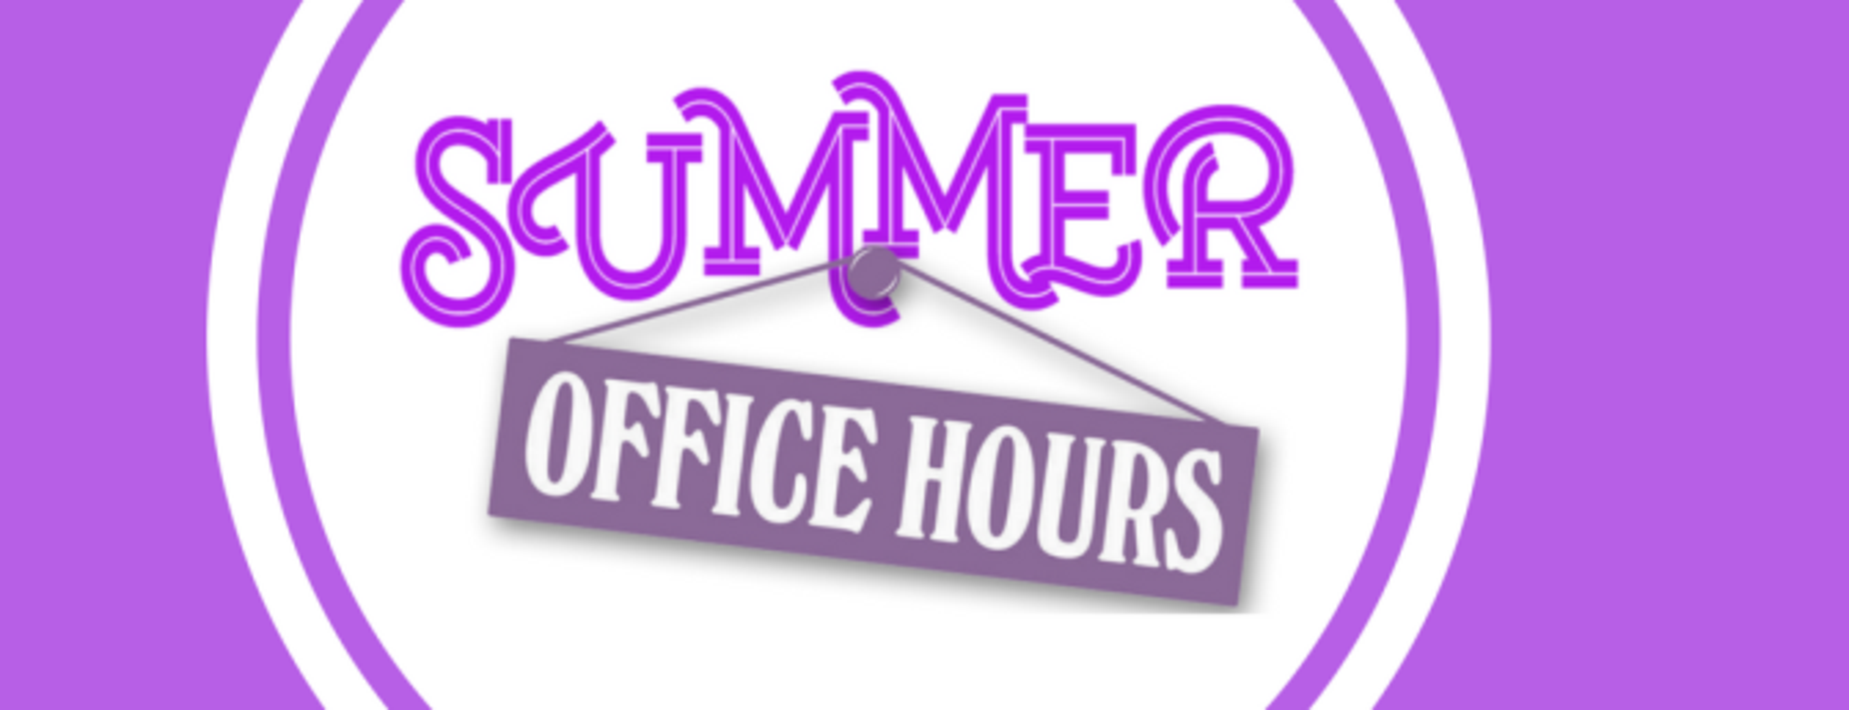 Summer Office Hours - 8:00 am - 4:00 pm